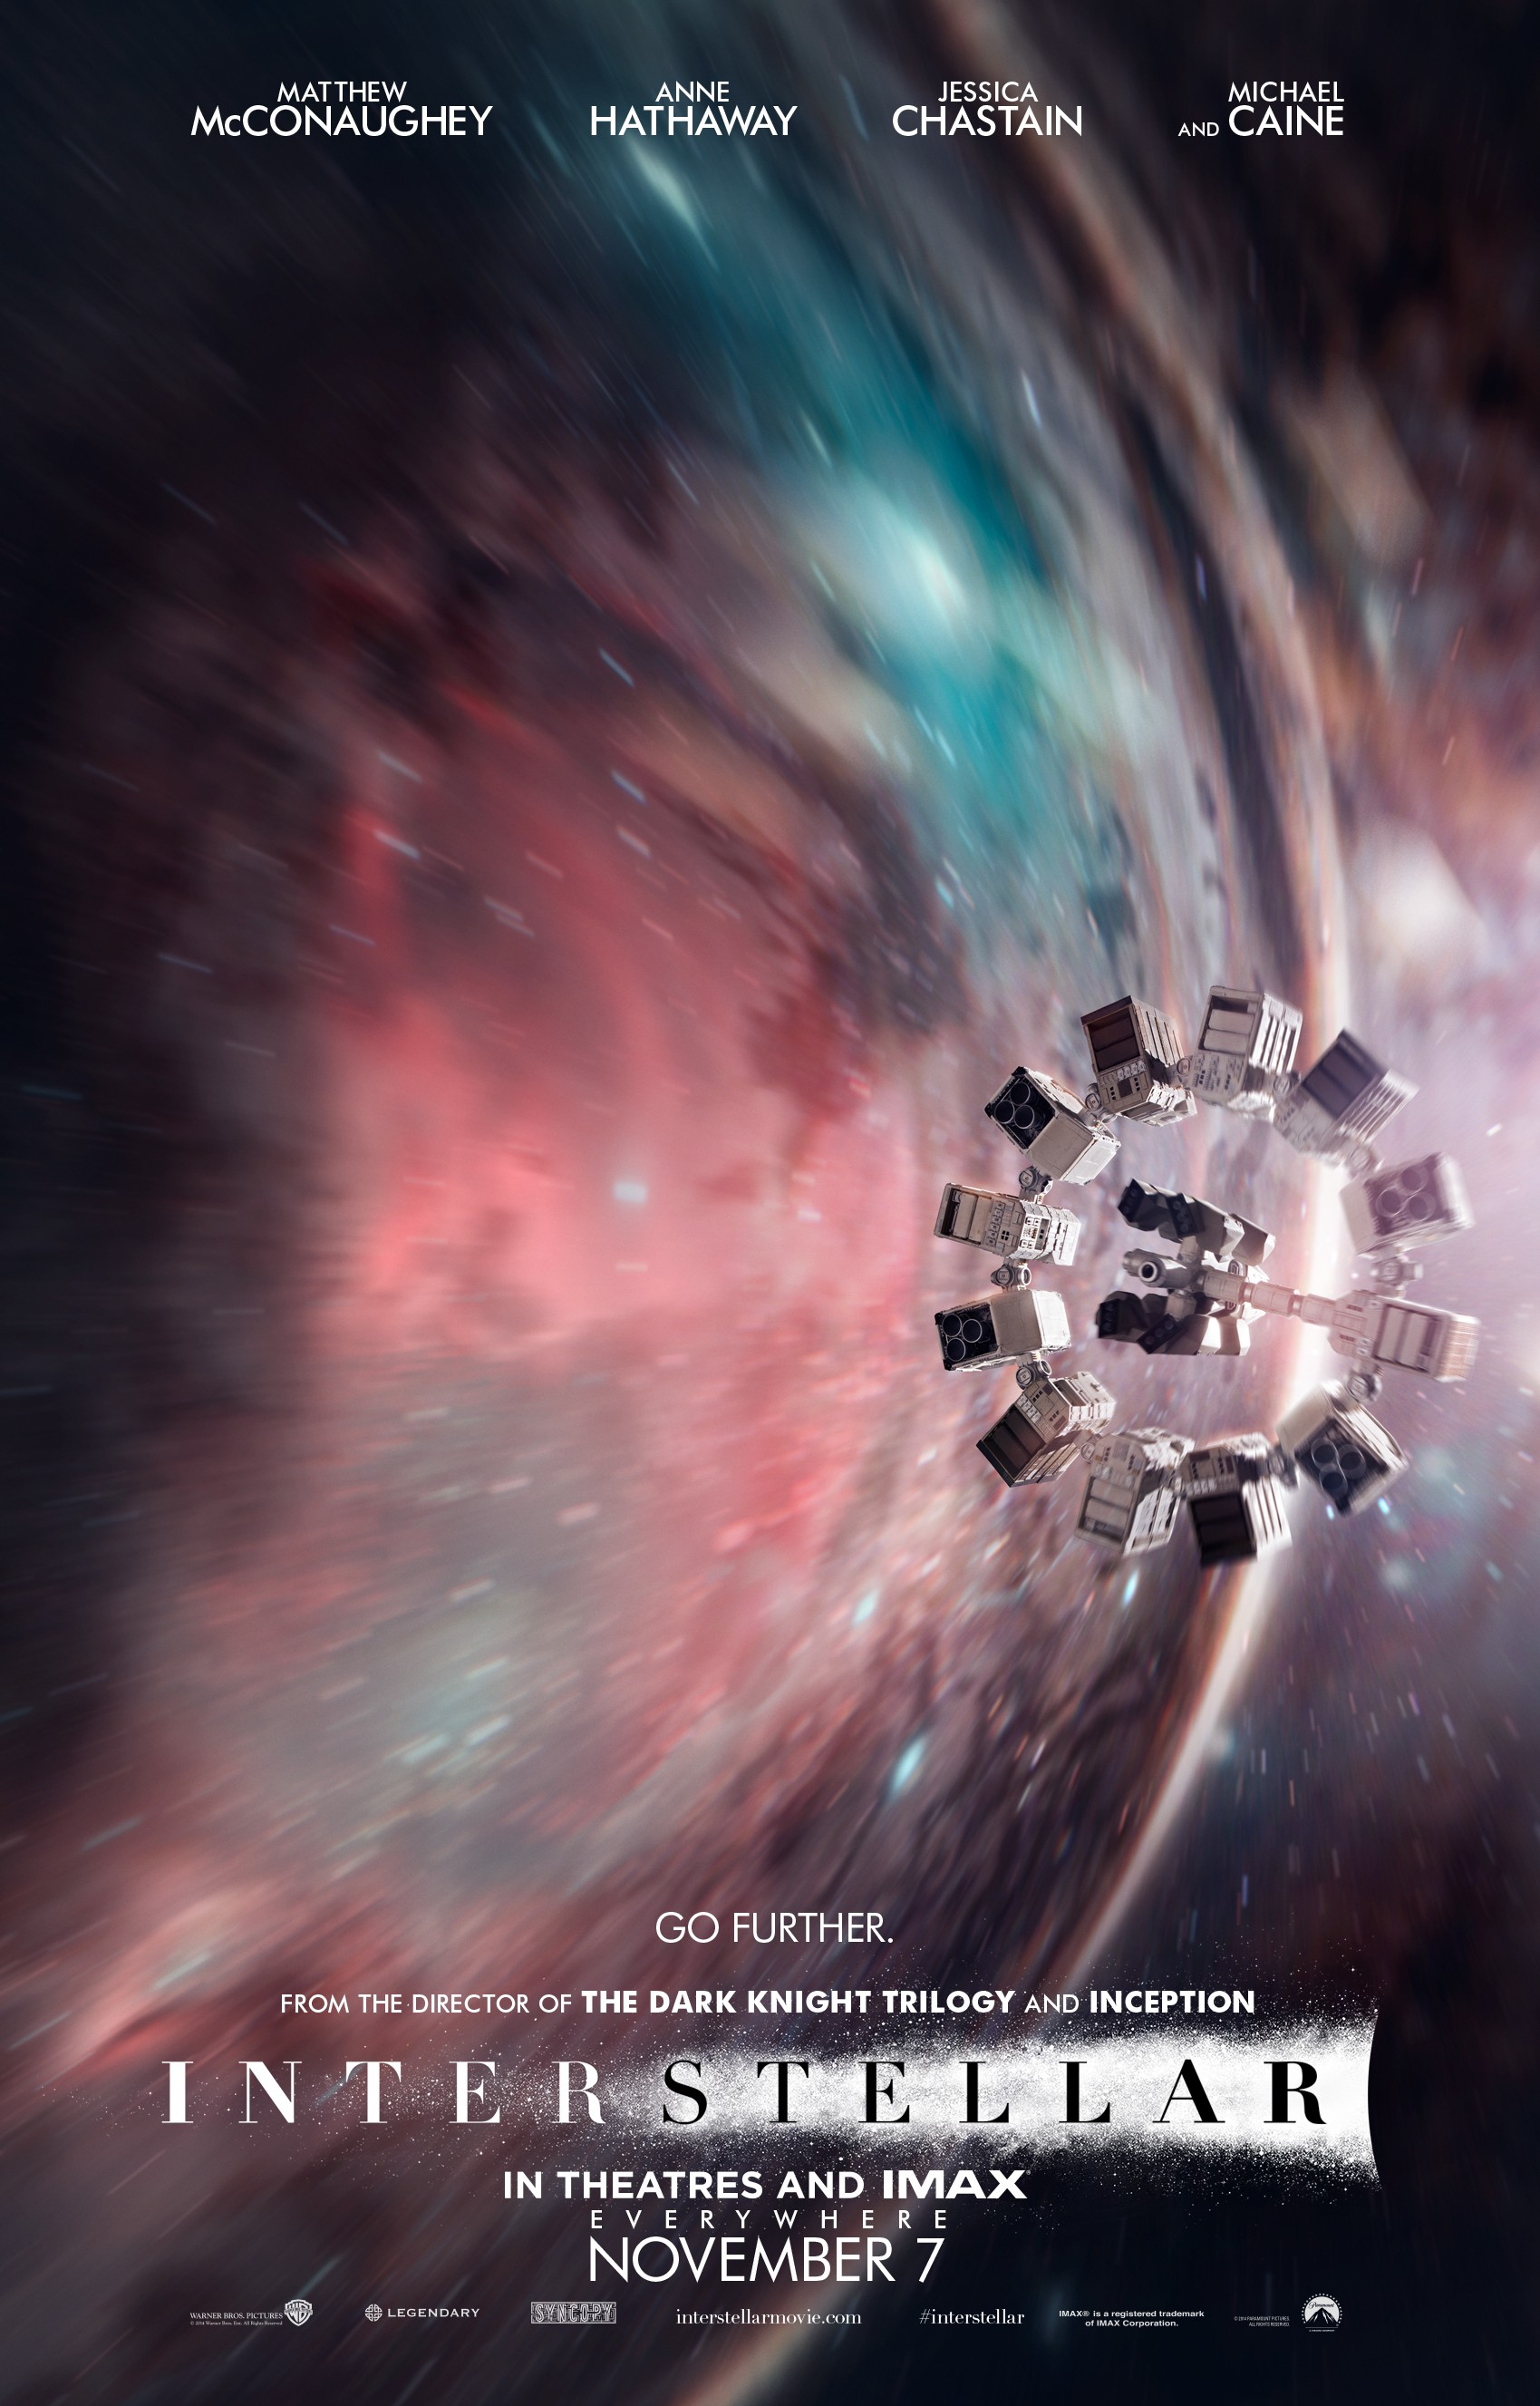 Interstellar-Official Poster Banner PROMO XXLG-19SETEMBRO2014-01